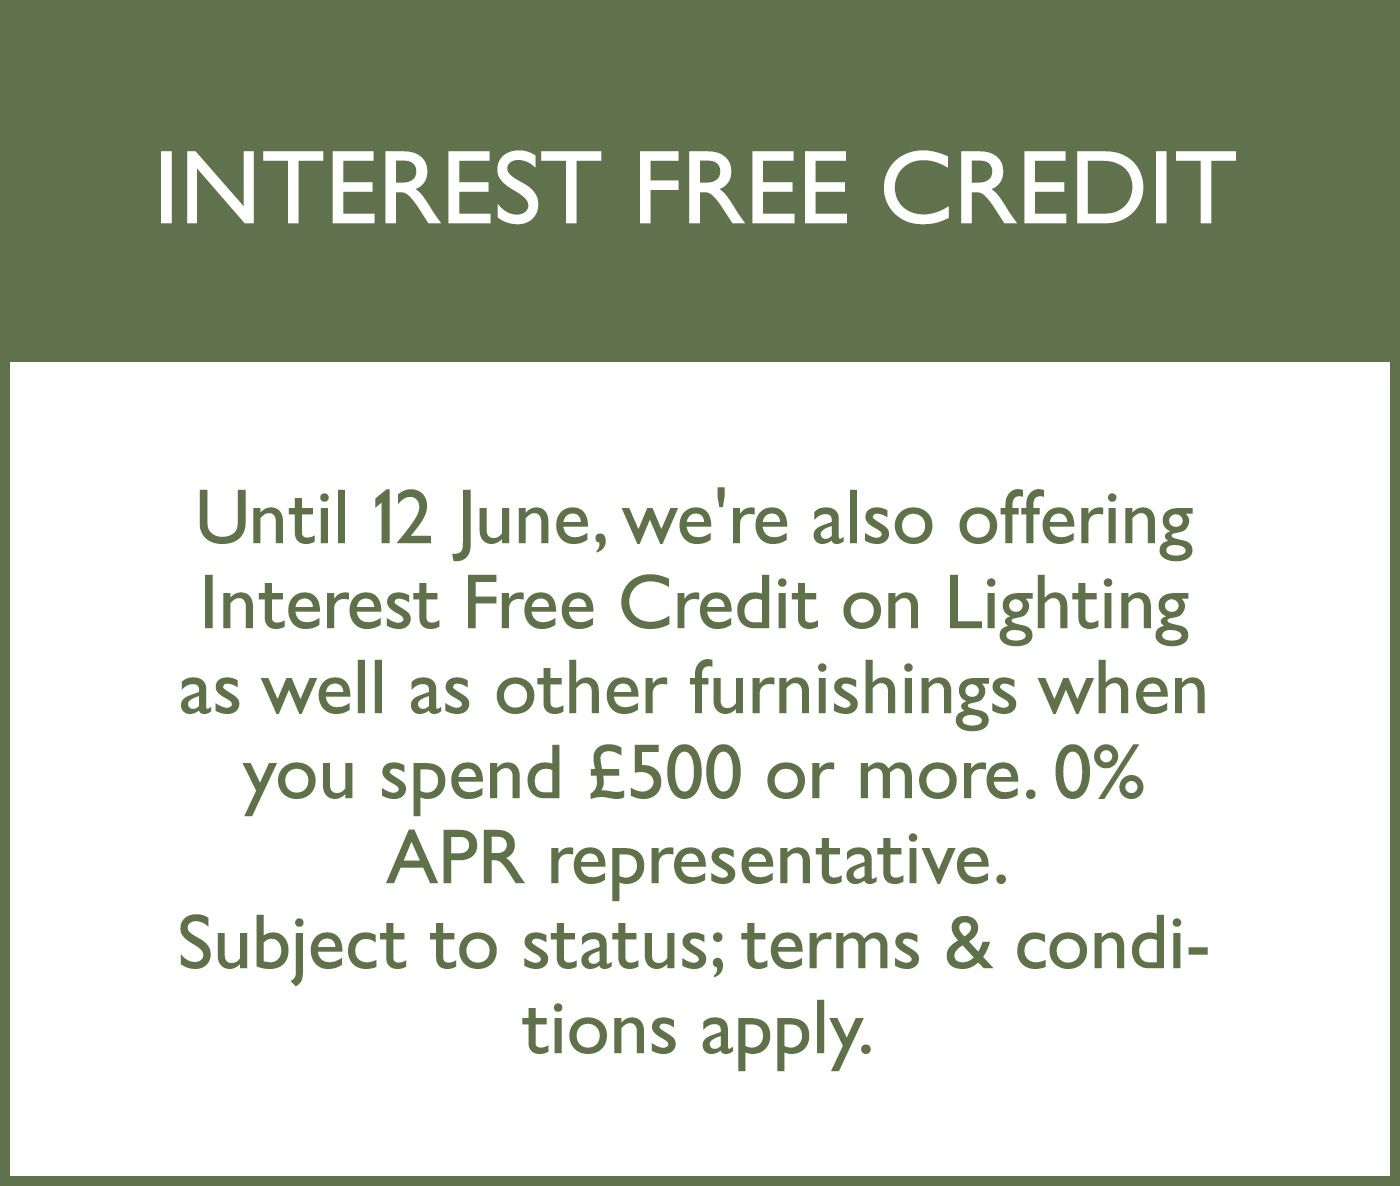 Interest free credit on lighting offer